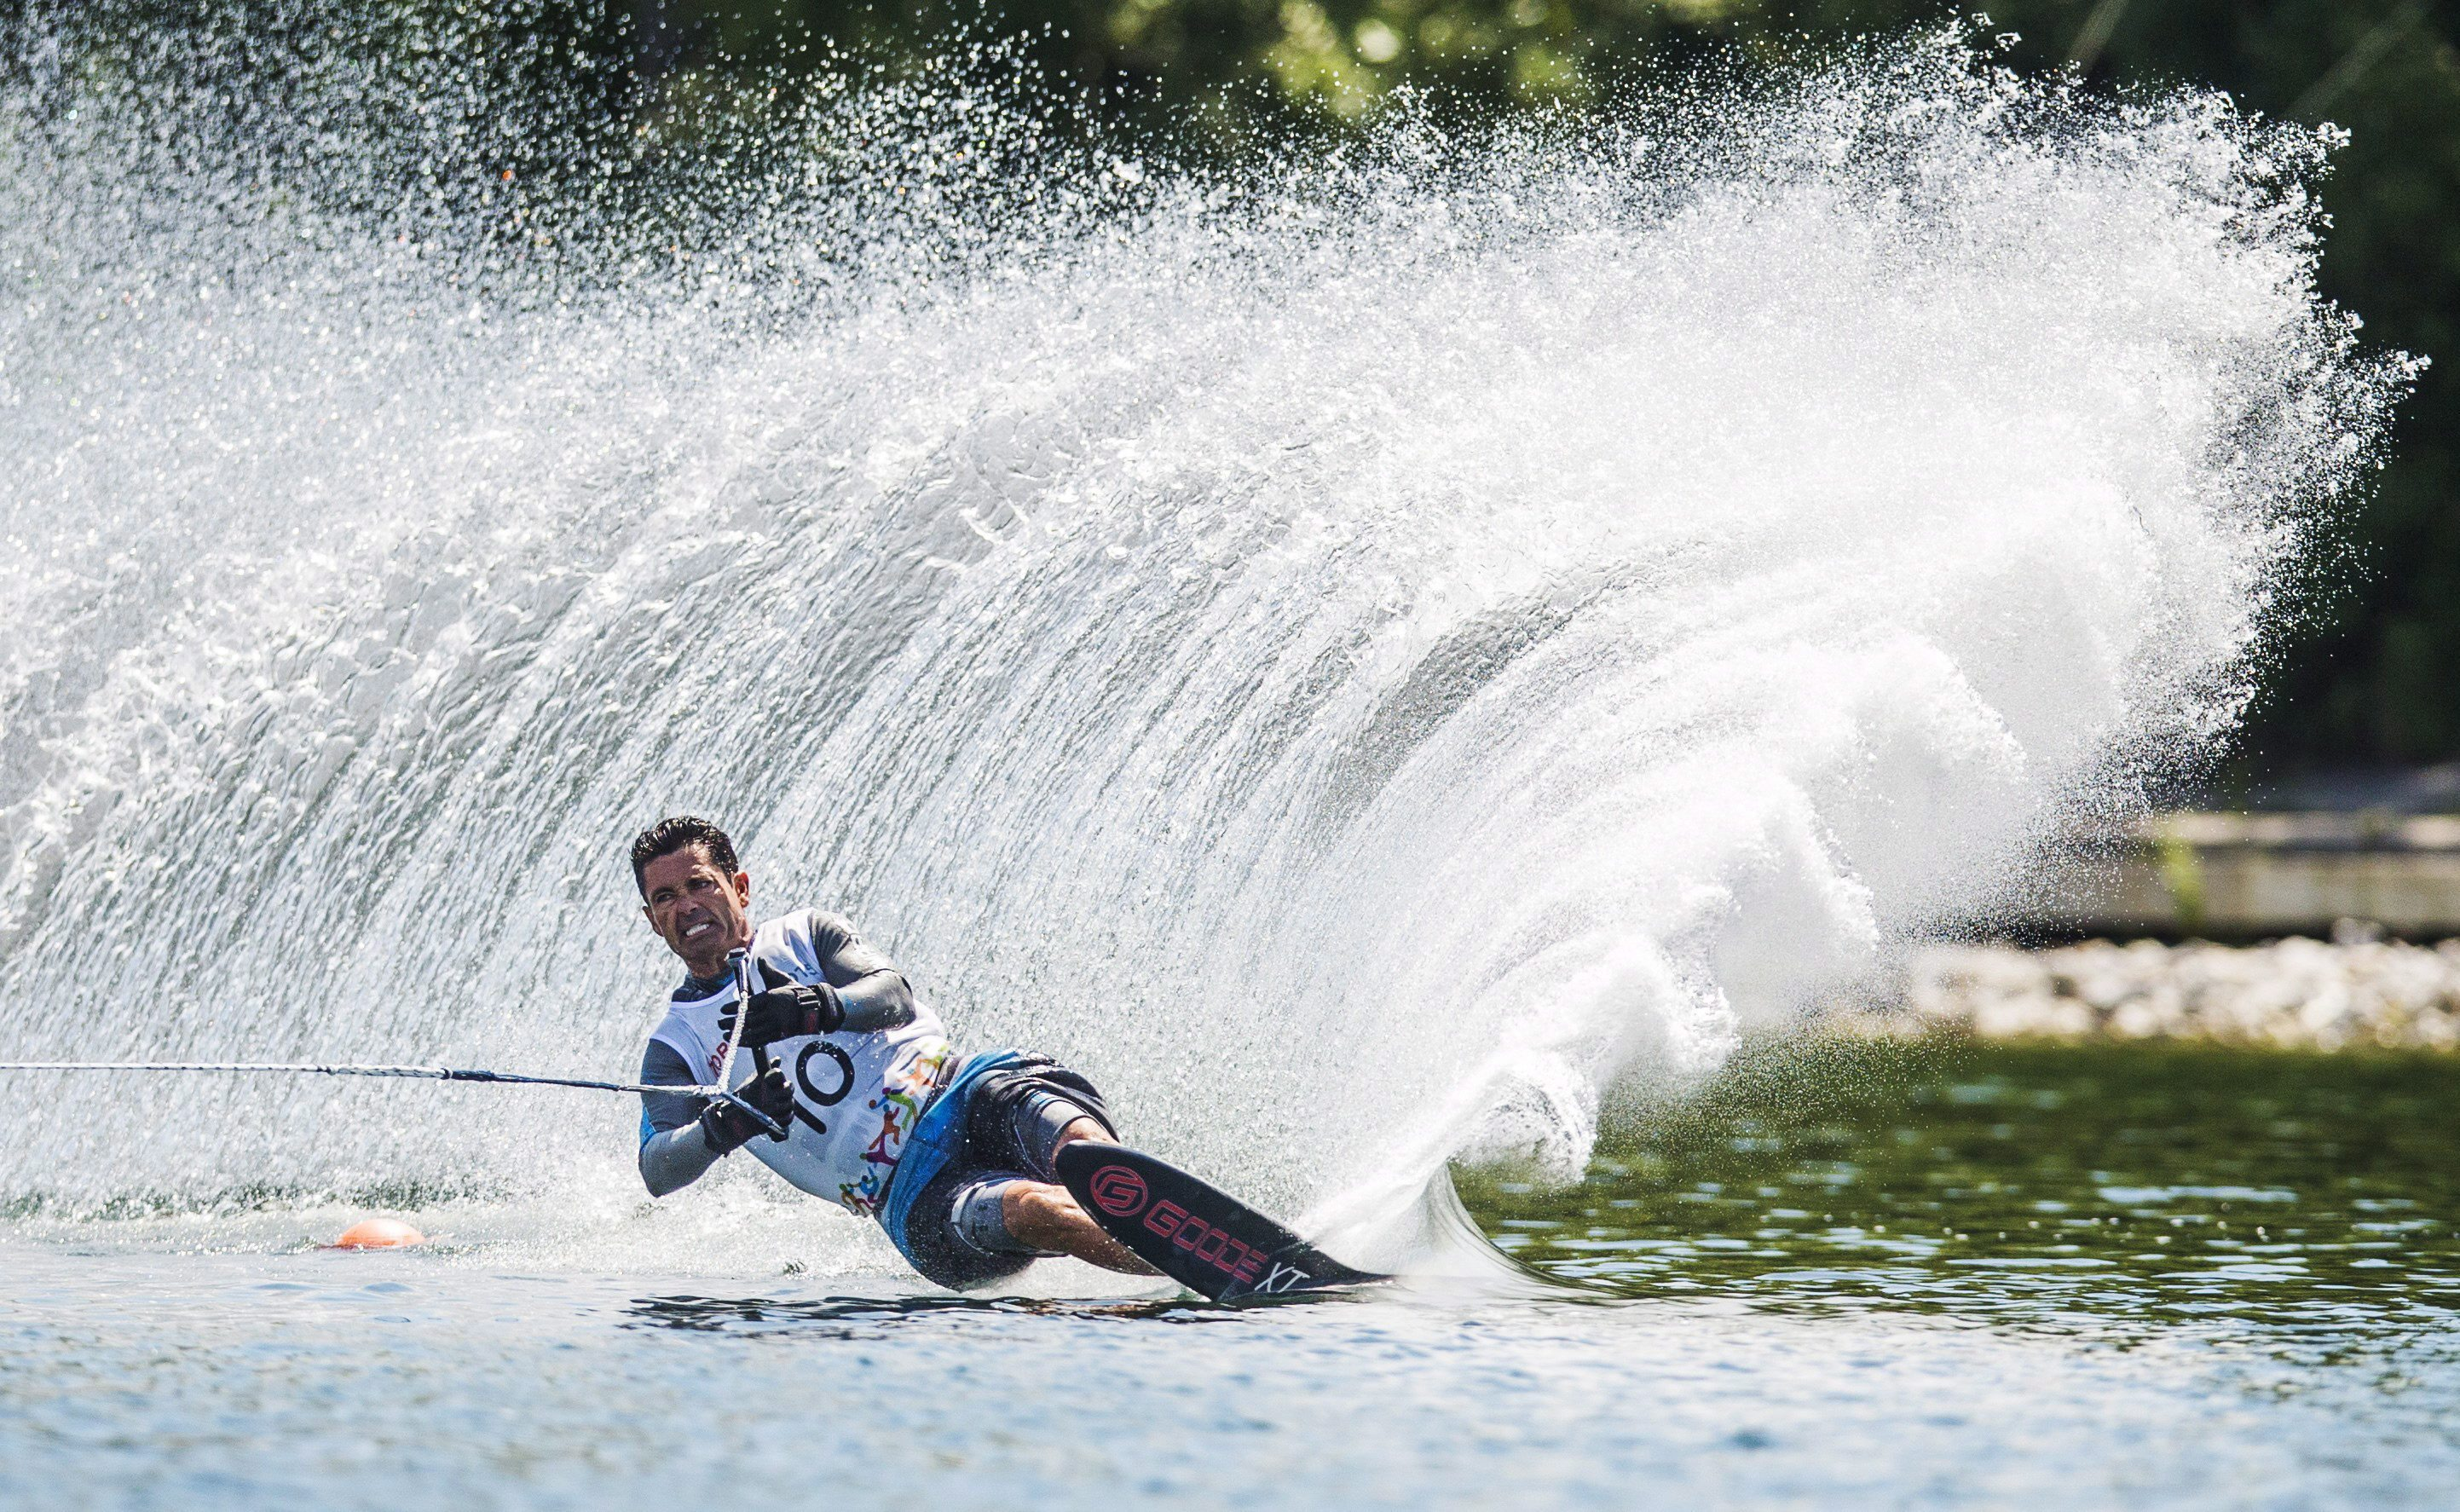 Jaret Llewellyn of Canada competes during the men's waterski slalom preliminary round at the Pan Am Games in Toronto, Monday July 20, 2015. THE CANADIAN PRESS/Mark Blinch